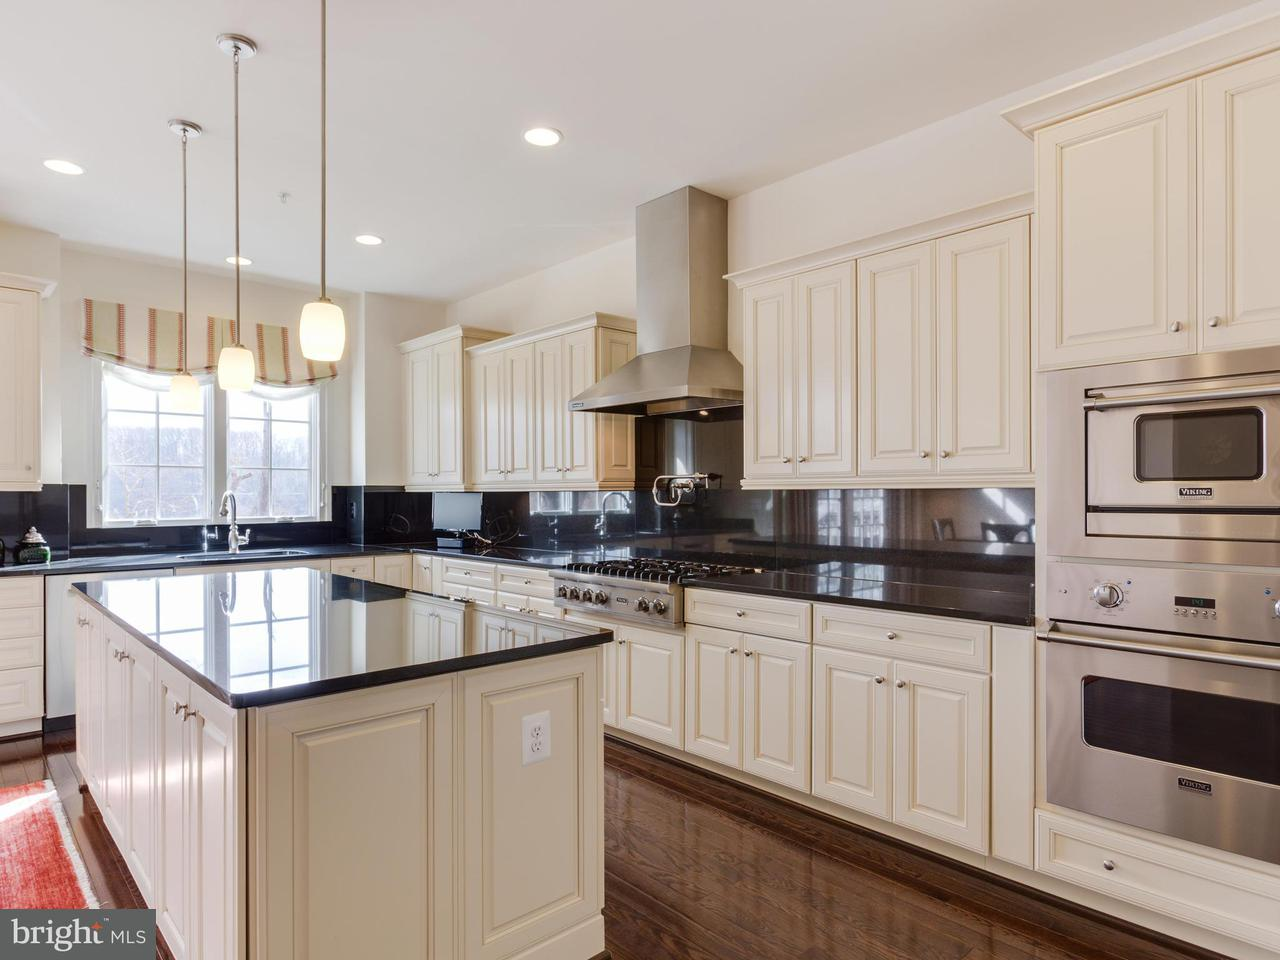 Townhouse for Sale at 4526 Westhall Dr Nw 4526 Westhall Dr Nw Washington, District Of Columbia 20007 United States